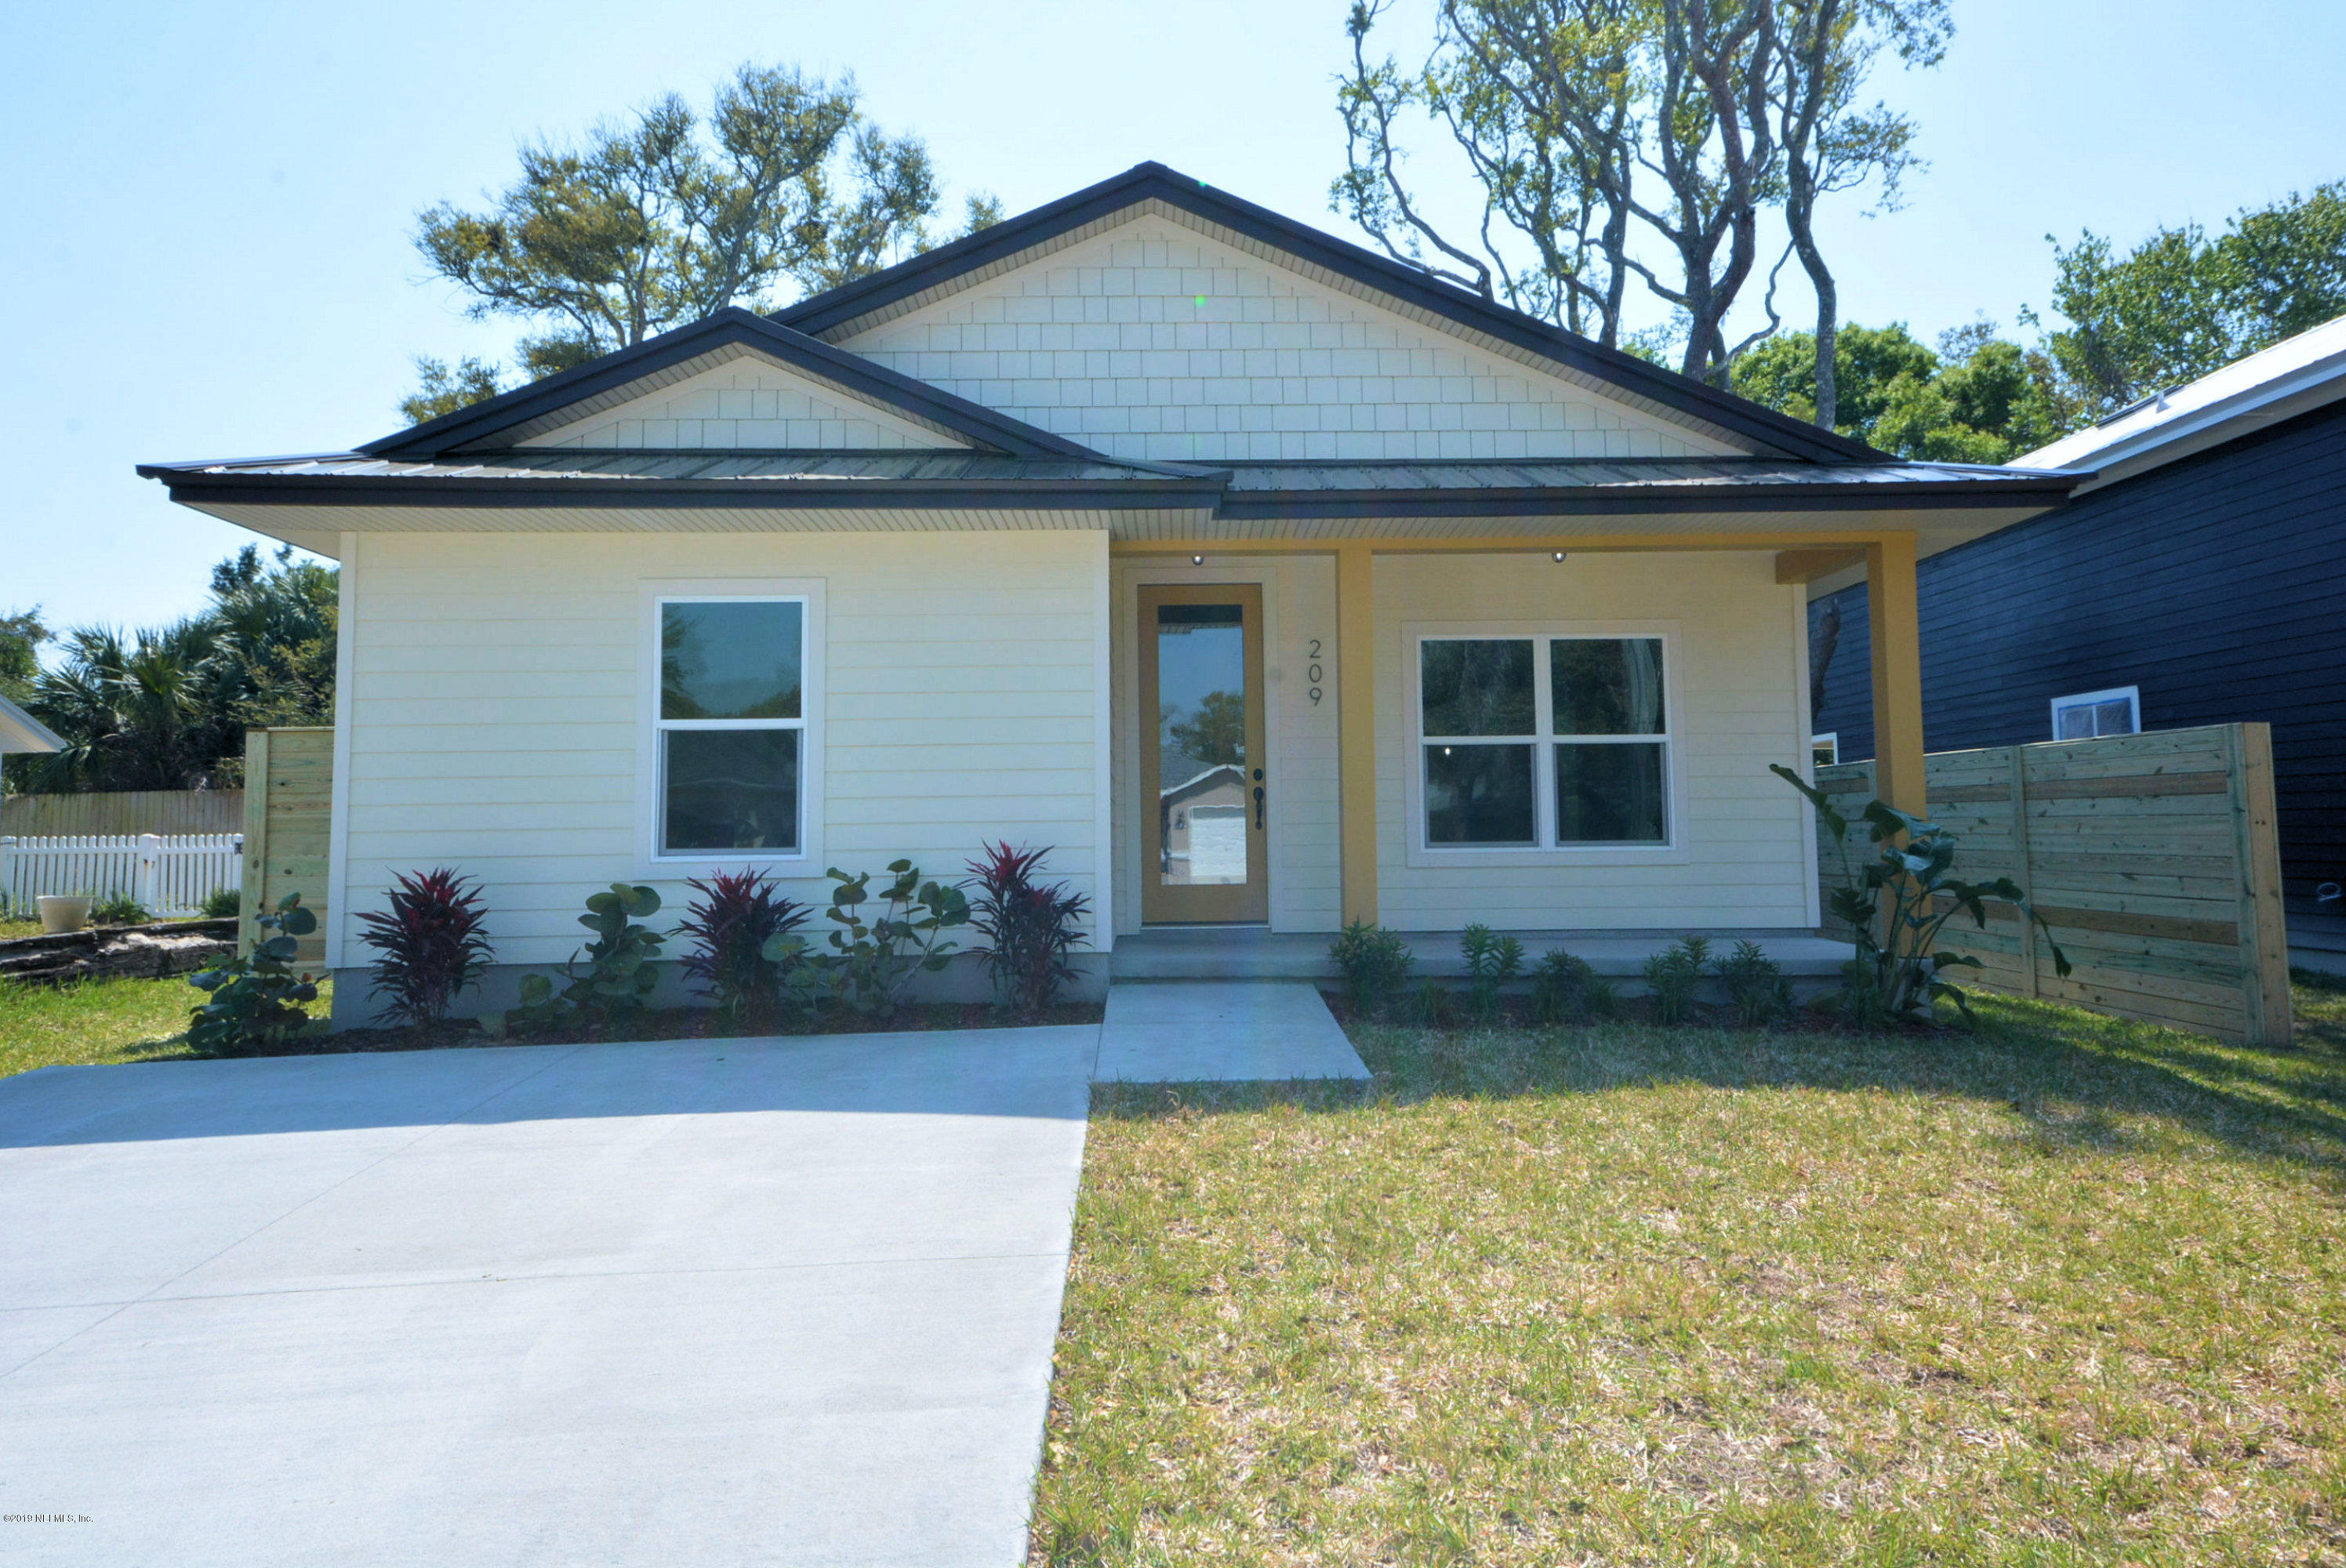 209 3RD, ST AUGUSTINE, FLORIDA 32080, 3 Bedrooms Bedrooms, ,2 BathroomsBathrooms,Residential - single family,For sale,3RD,985962